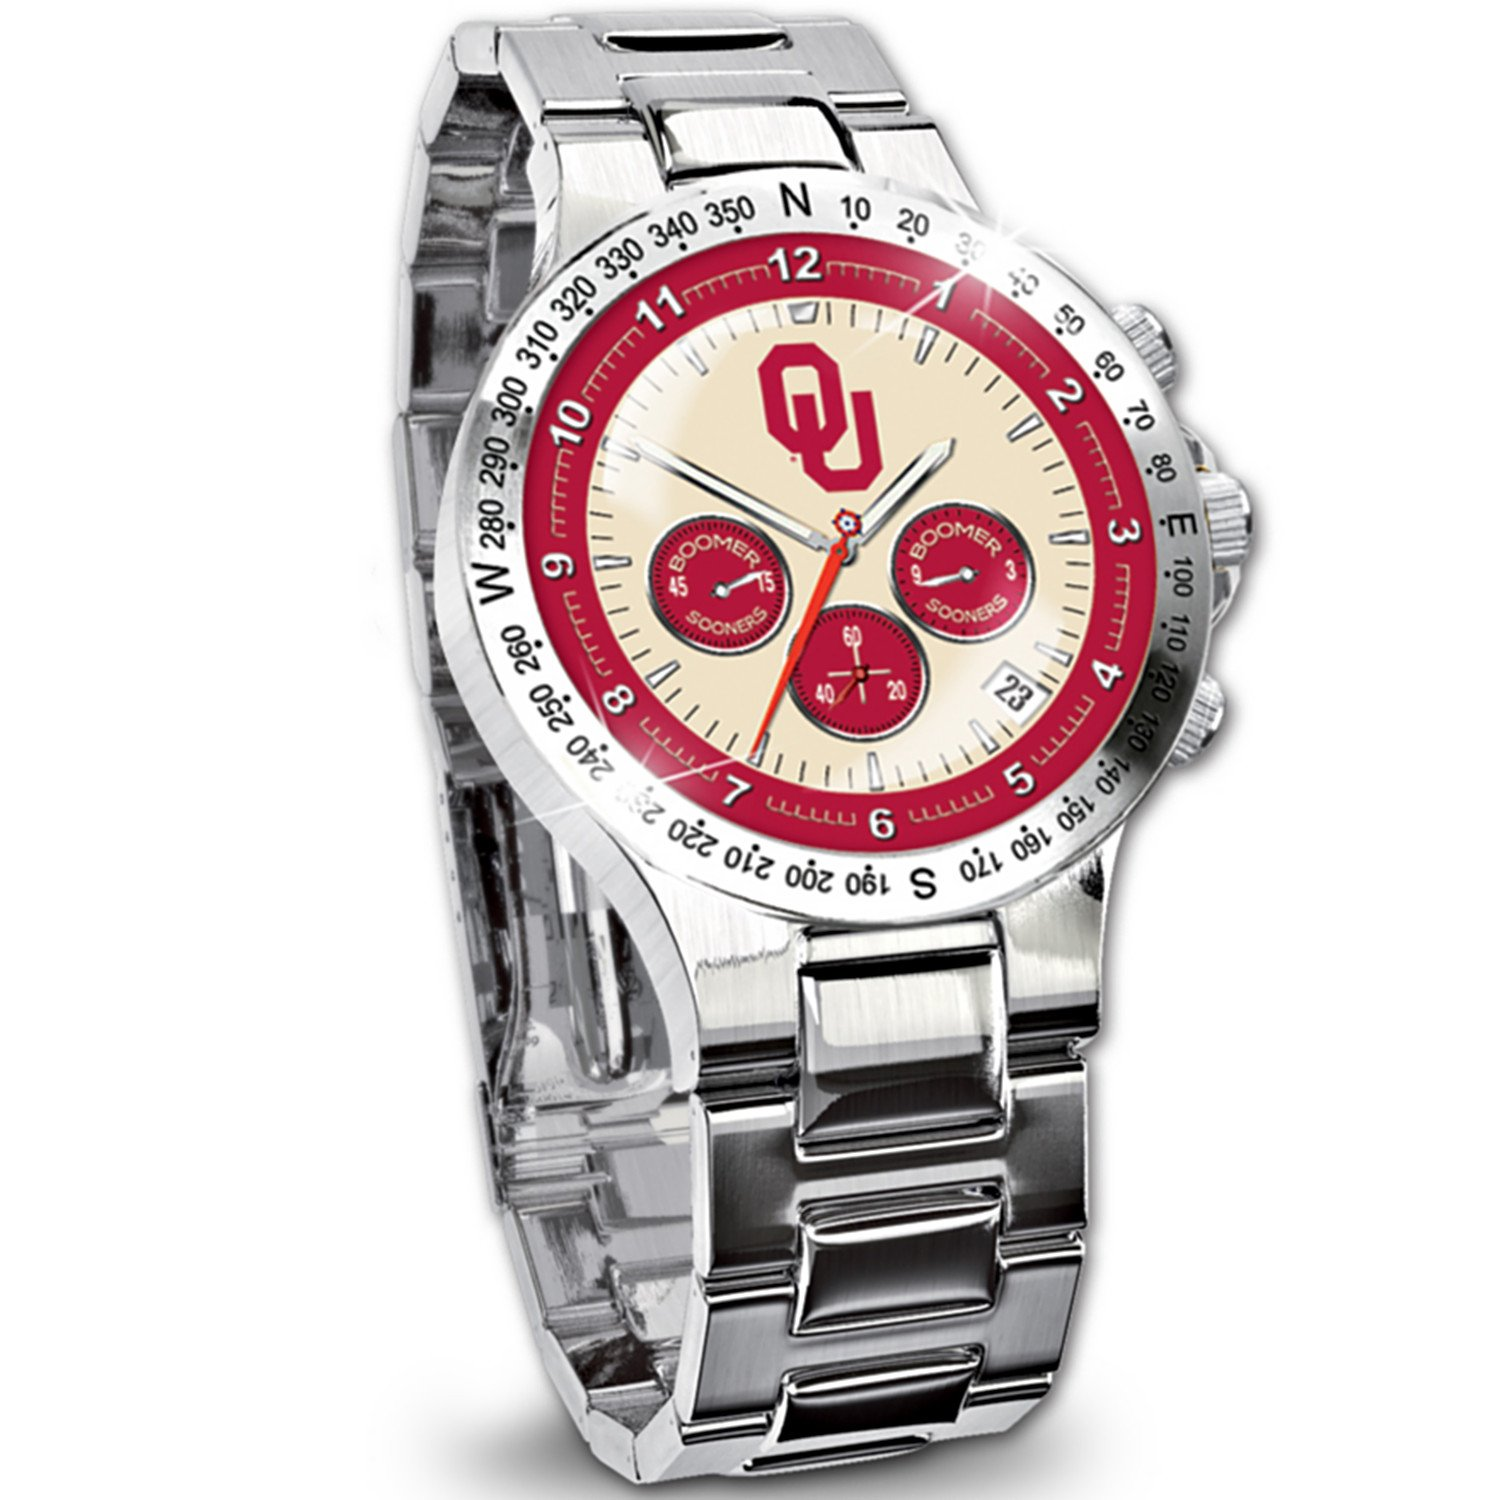 Oklahoma Sooners Collector's Watch by The Bradford Exchange